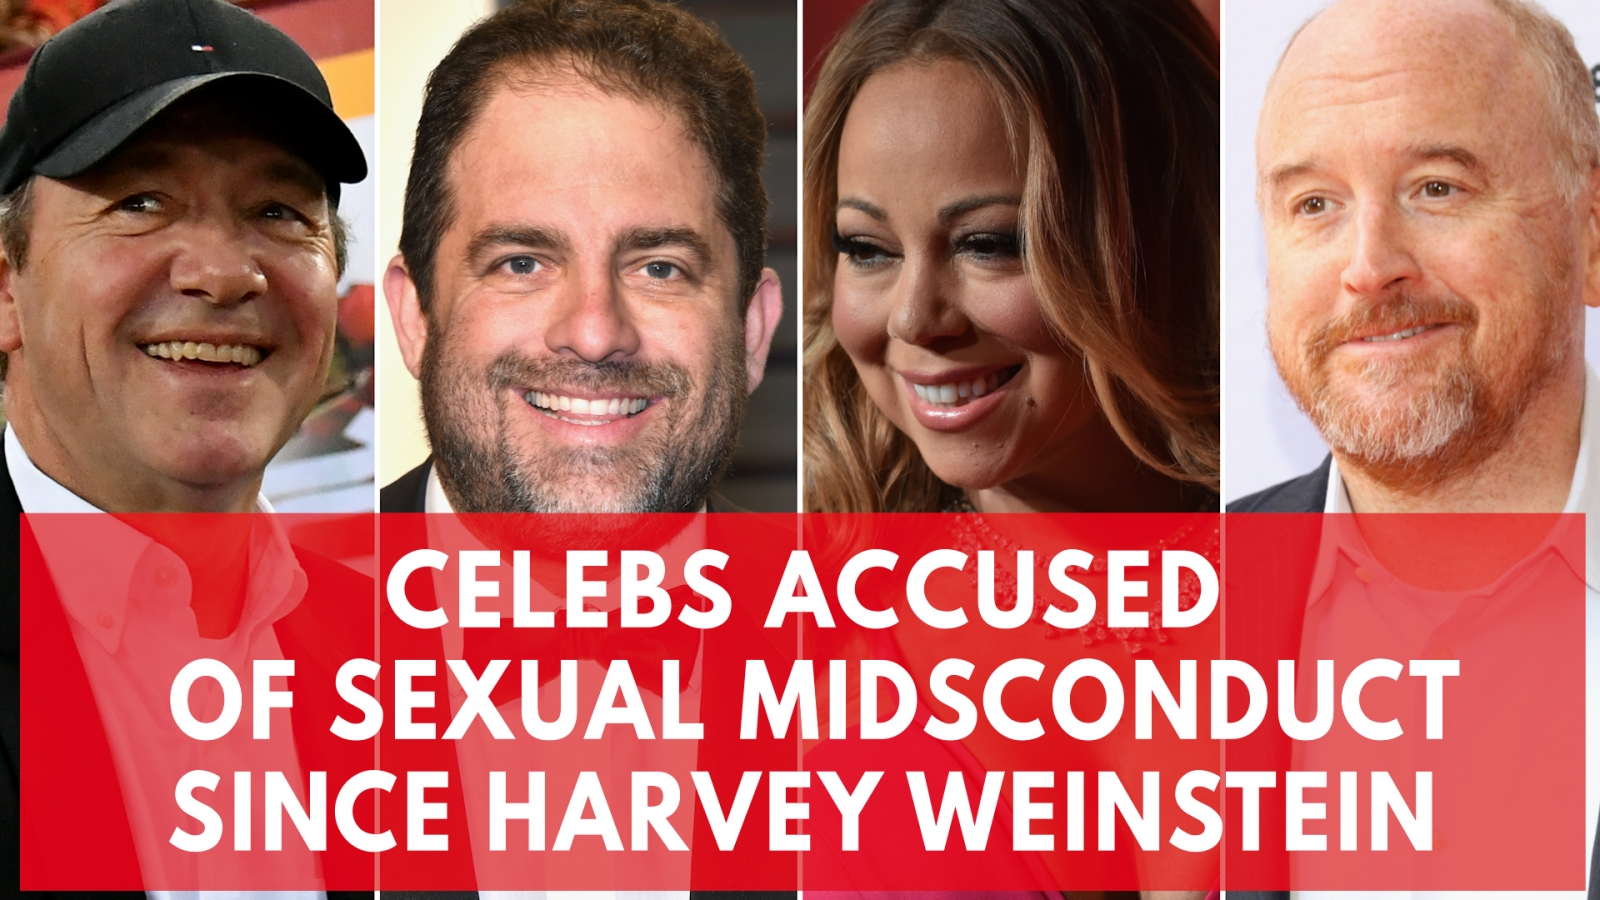 High-profile celebrities who've been accused of sexual misconduct since Harvey Weinstein